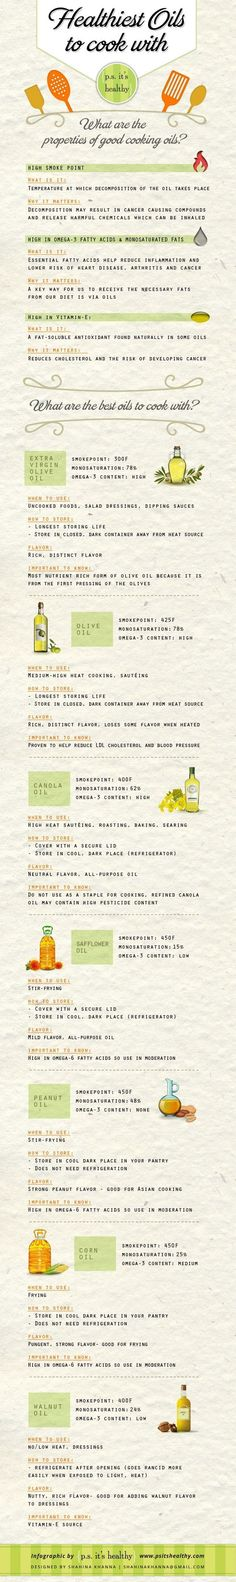 Healthiest Cooking Oils | Nutrition Facts